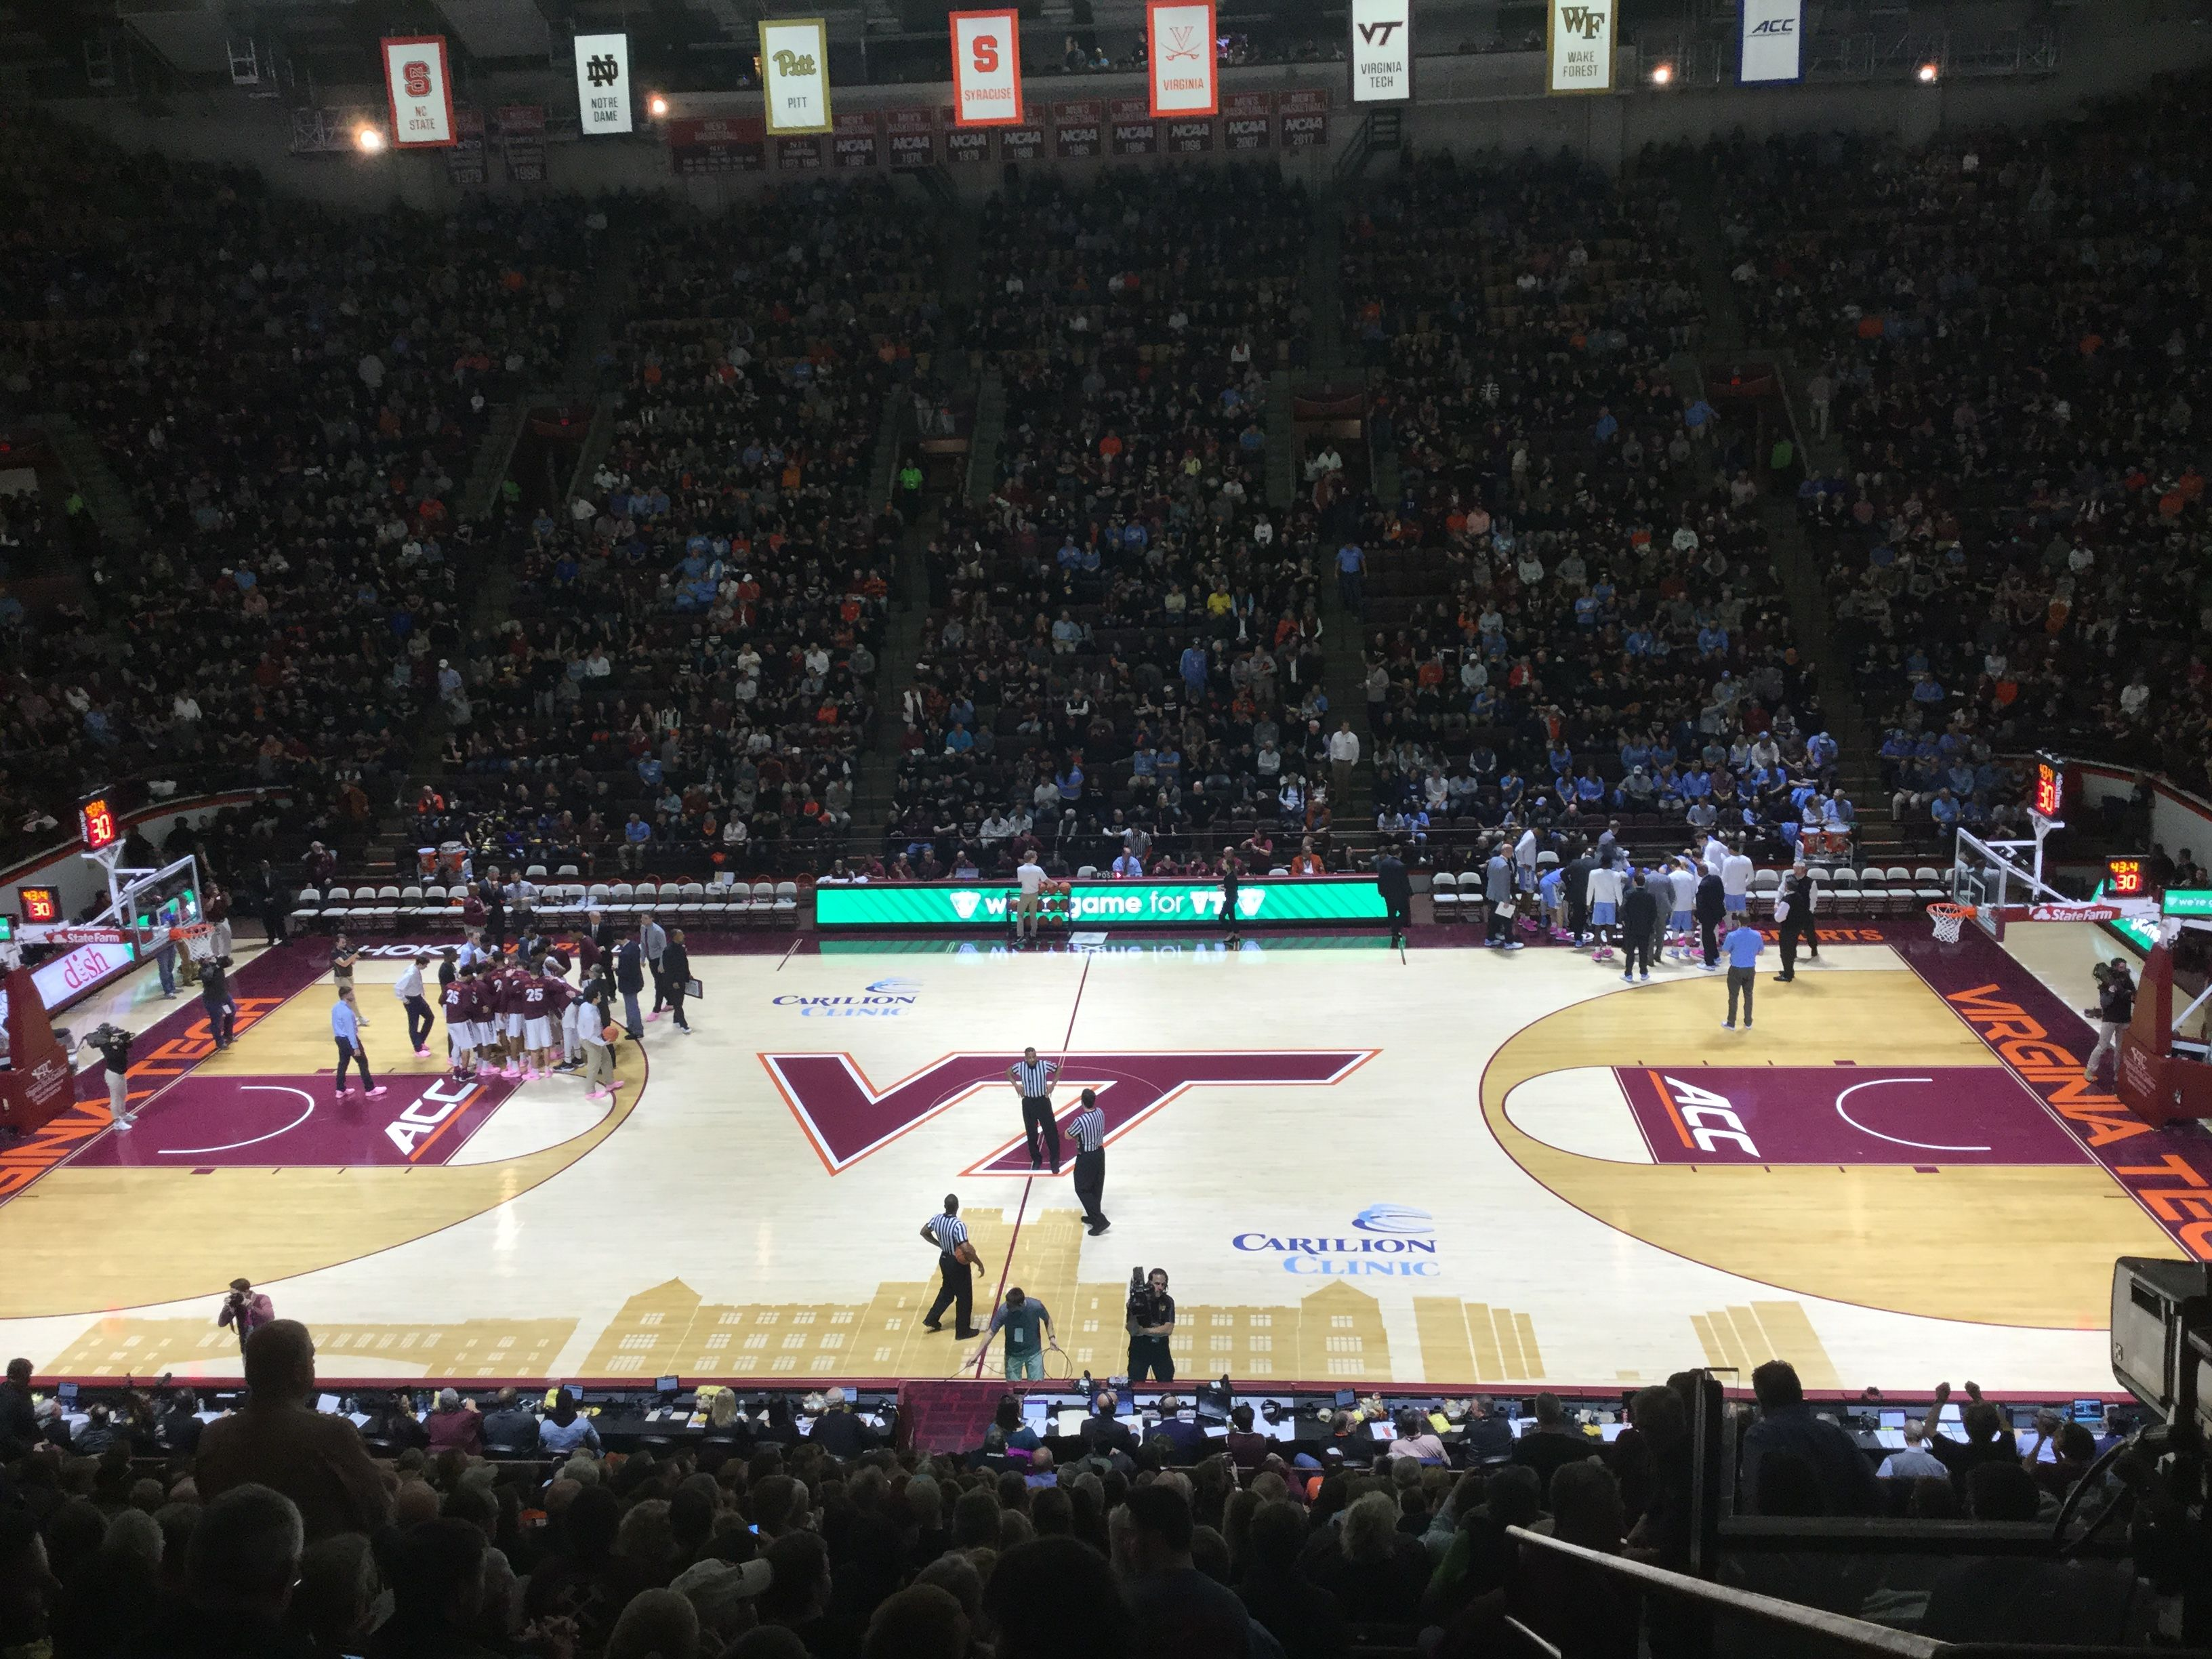 Virginia Tech beating UNC!! Virginia tech hokies, Hokies